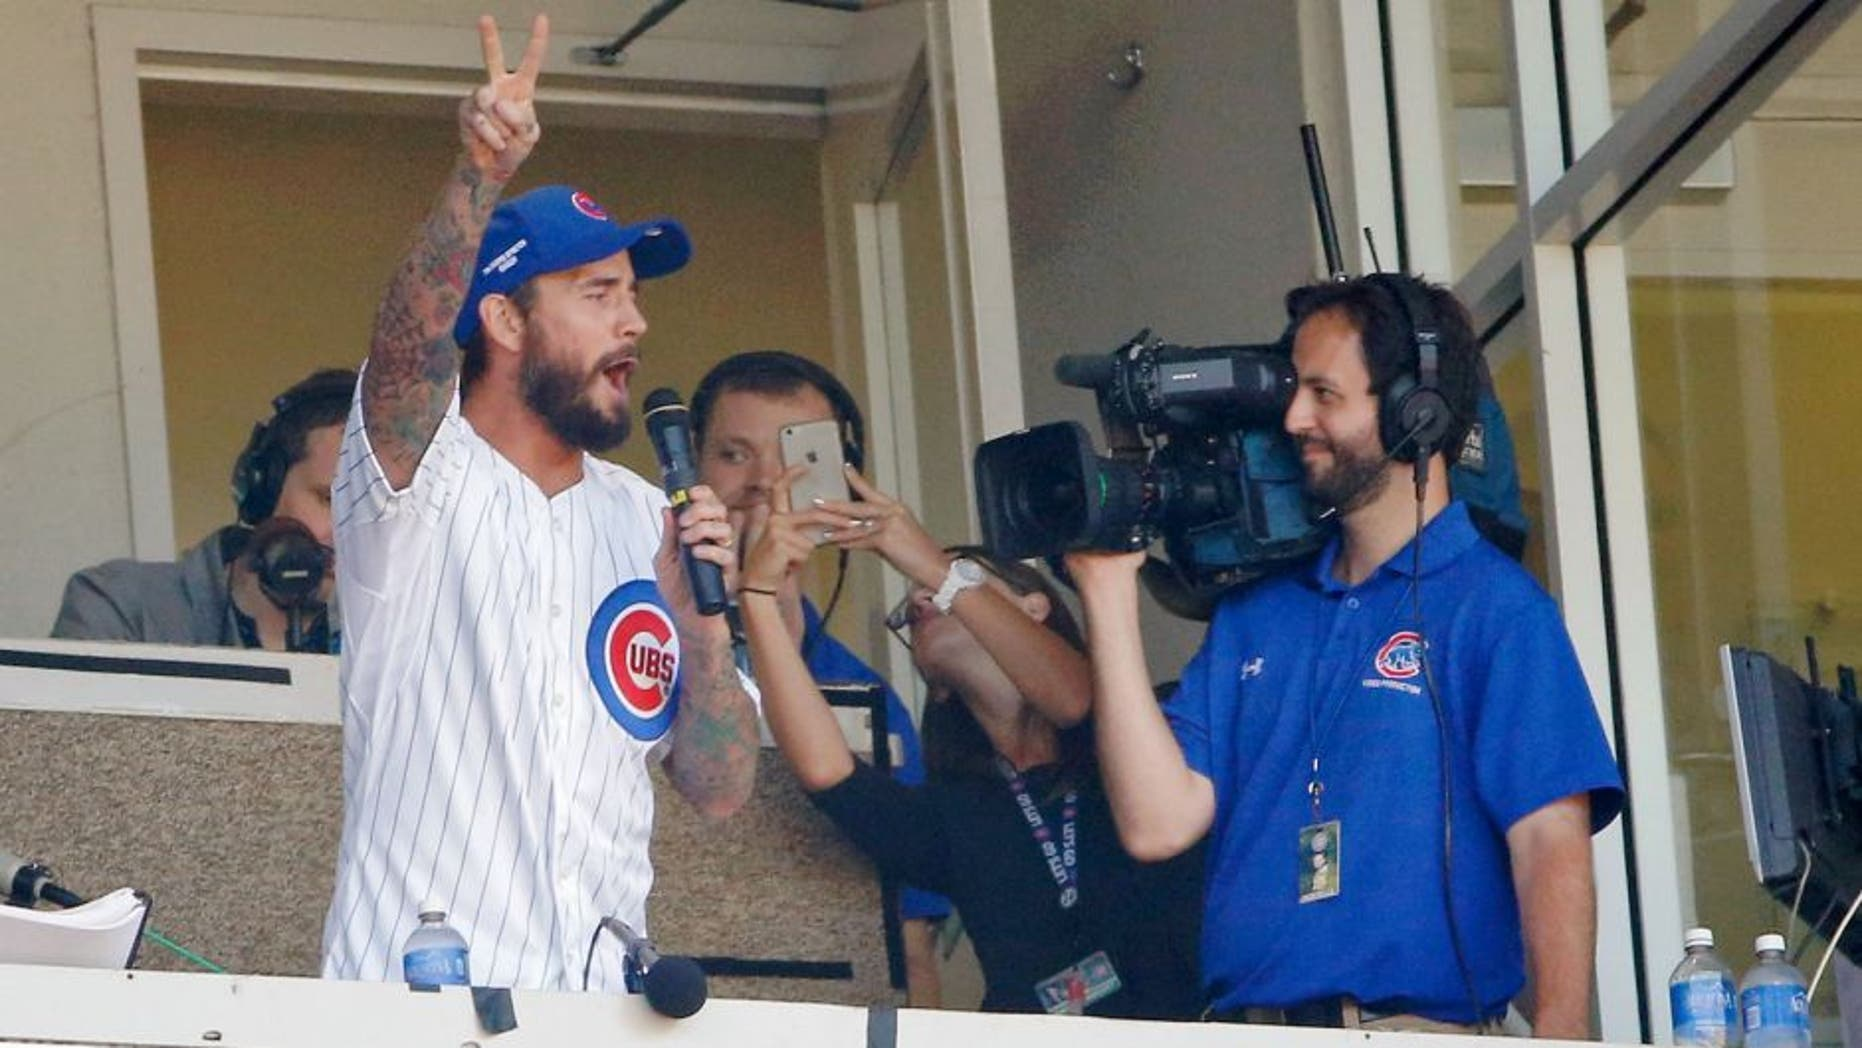 CHICAGO, IL - SEPTEMBER 26: UFC fighter CM Punk sings the seventh inning stretch during the game between the Chicago Cubs and the Pittsburgh Pirates at Wrigley Field on September 26, 2015 in Chicago, Illinois. (Photo by Jon Durr/Getty Images)